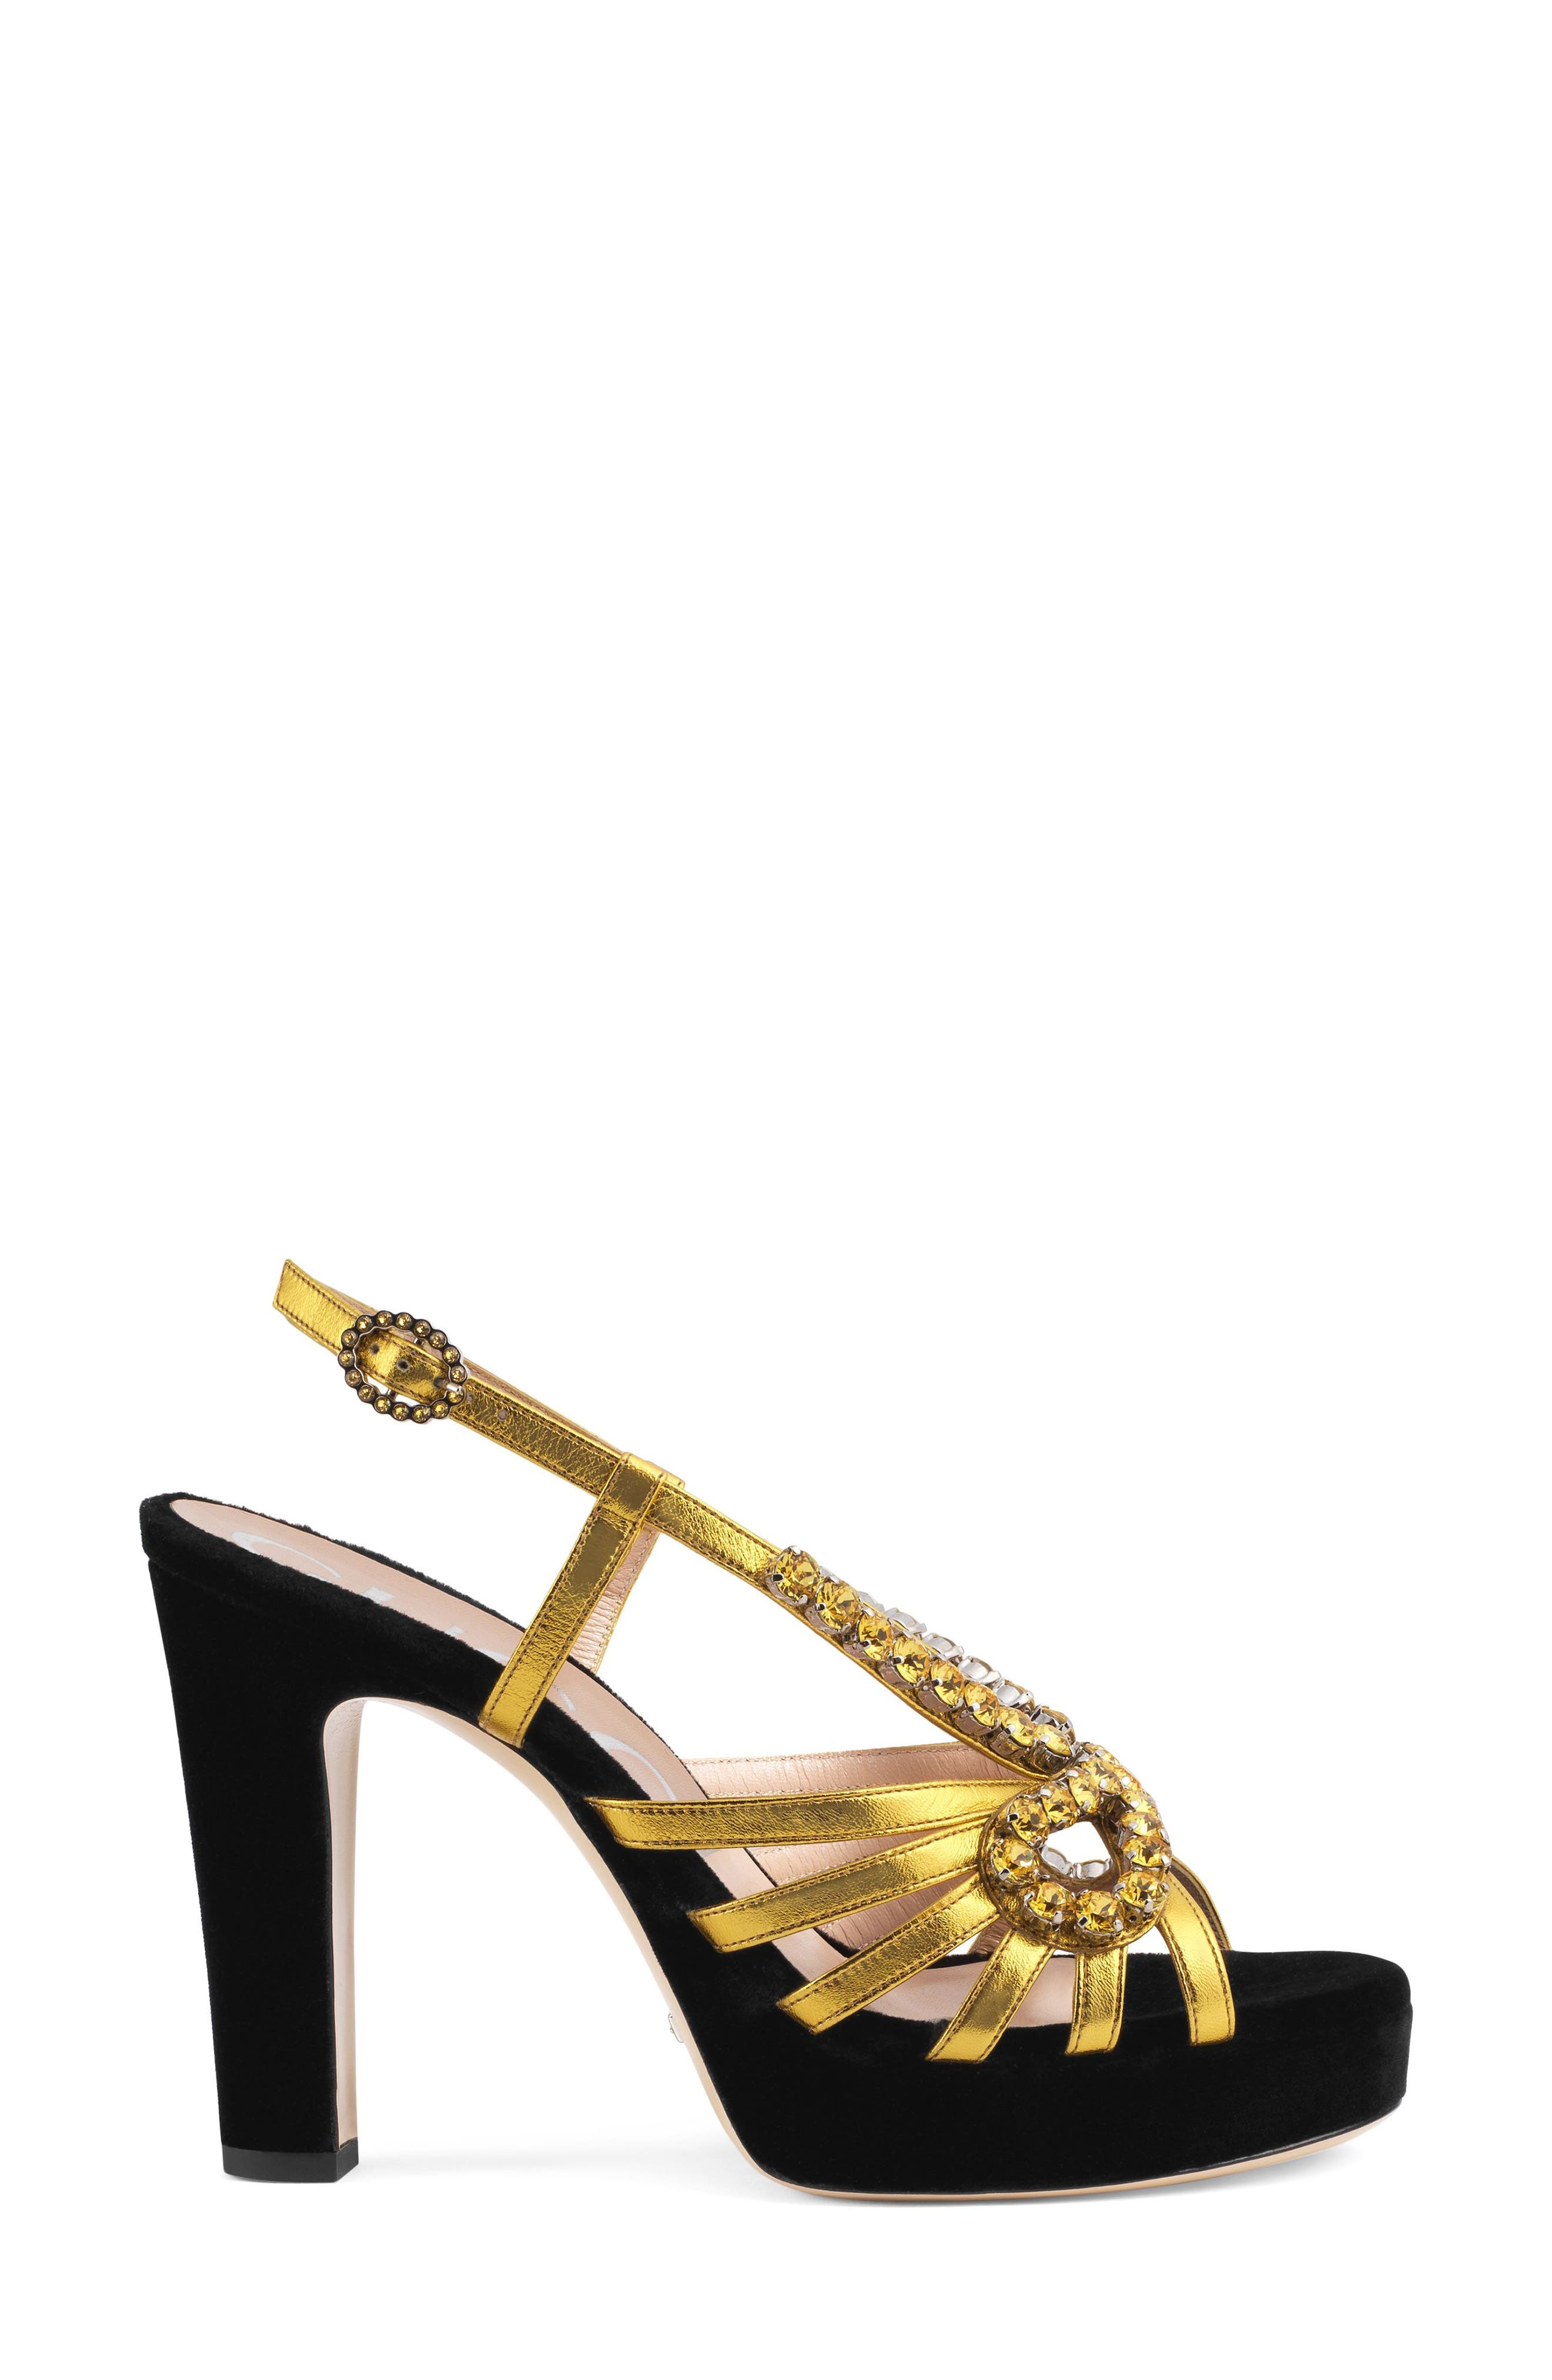 Zephyra Jewel Sandal,                             Alternate thumbnail 2, color,                             BLACK/ GOLD